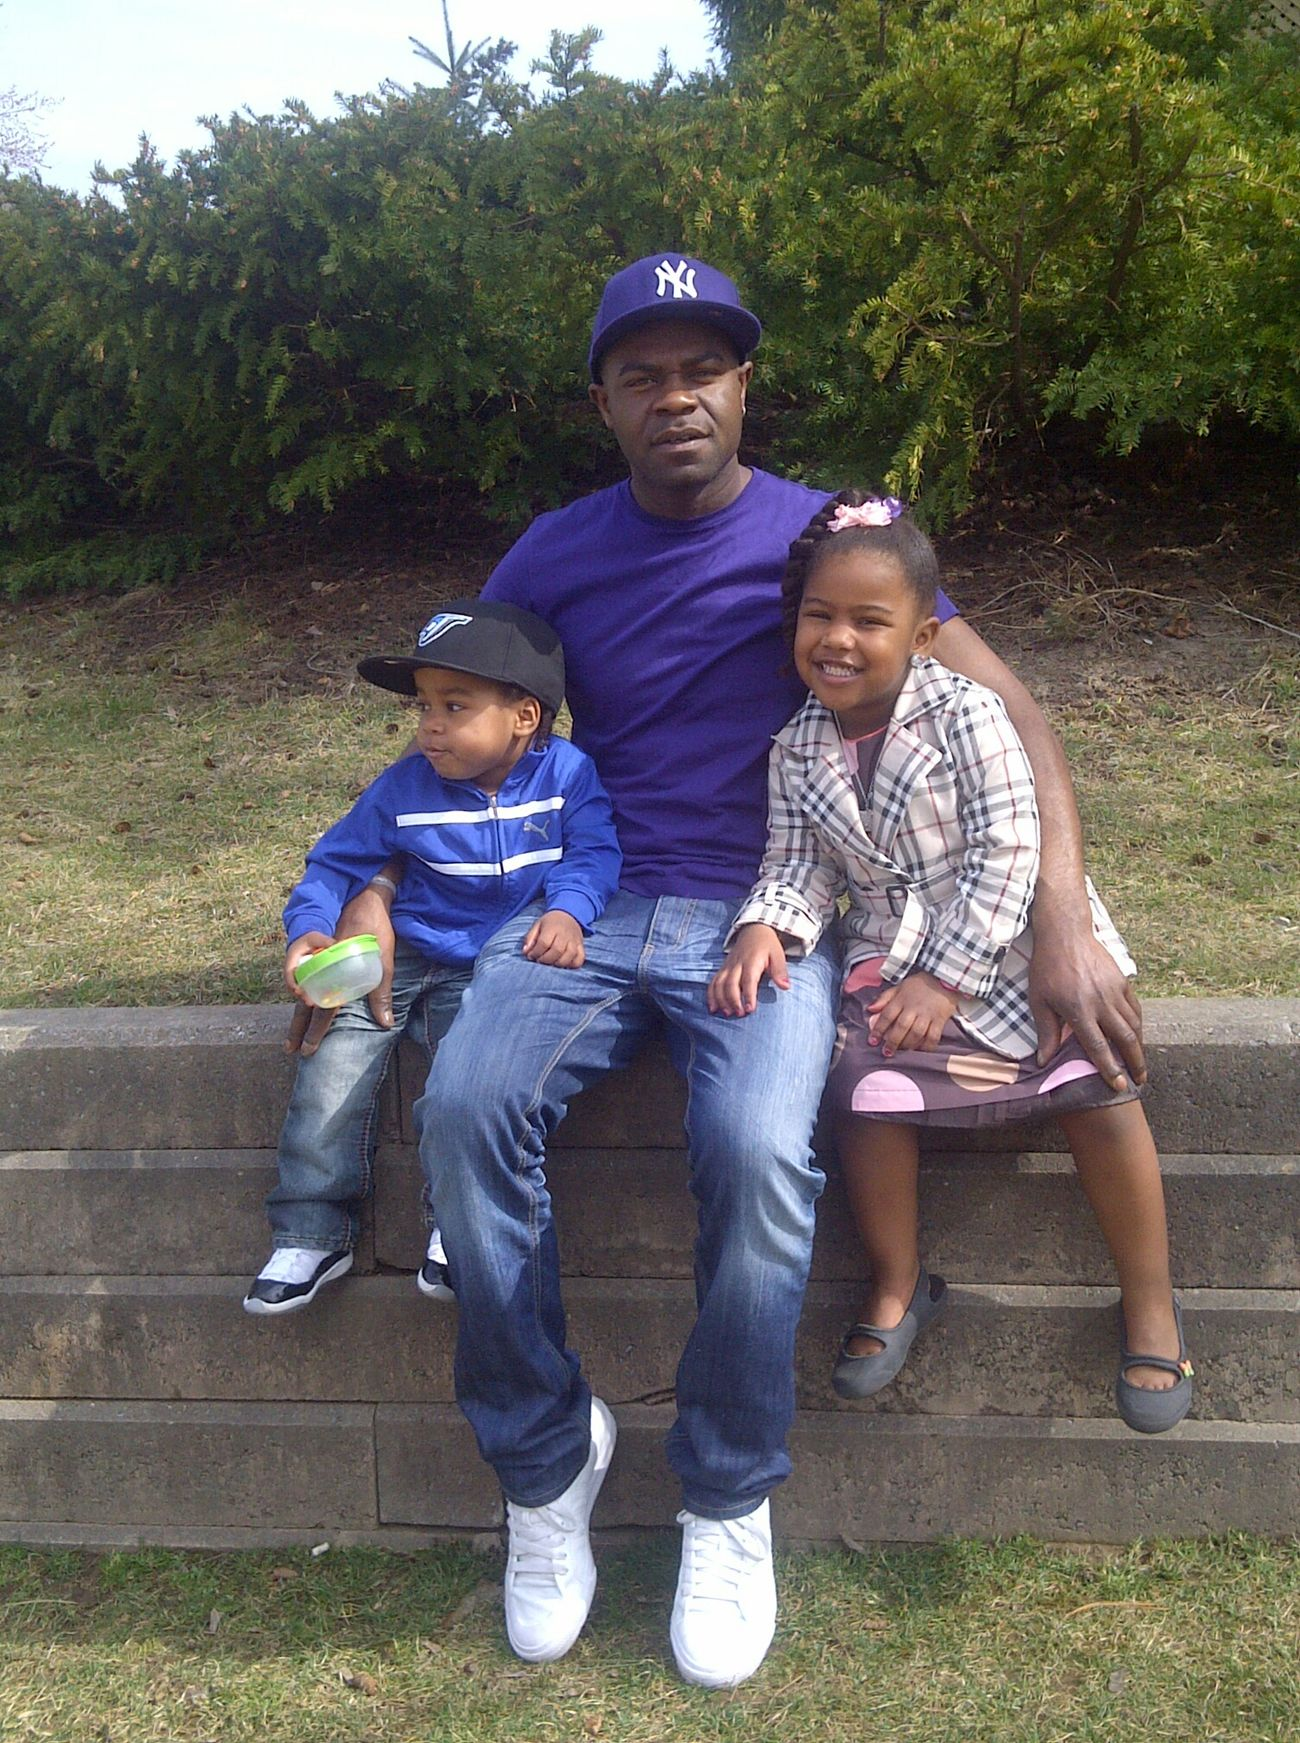 Family Matters am inspired by my children